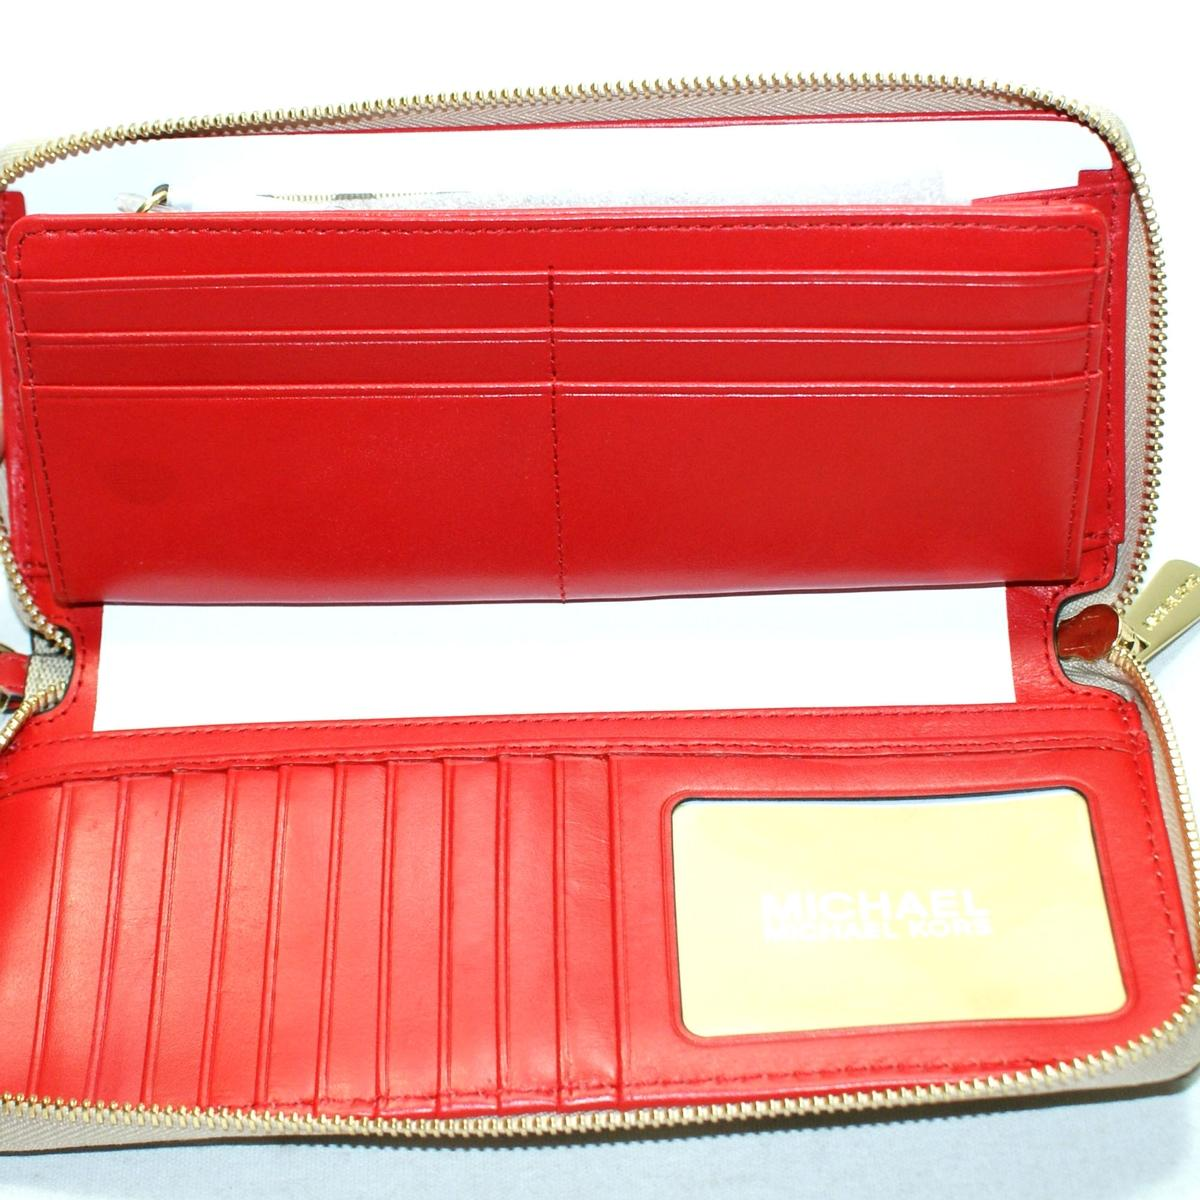 922167efc53585 Home · Michael Kors · Travel Continental Leather Zip Around Wallet Natural/ Bright  Red. CLICK THUMBNAIL TO ZOOM. Found ...